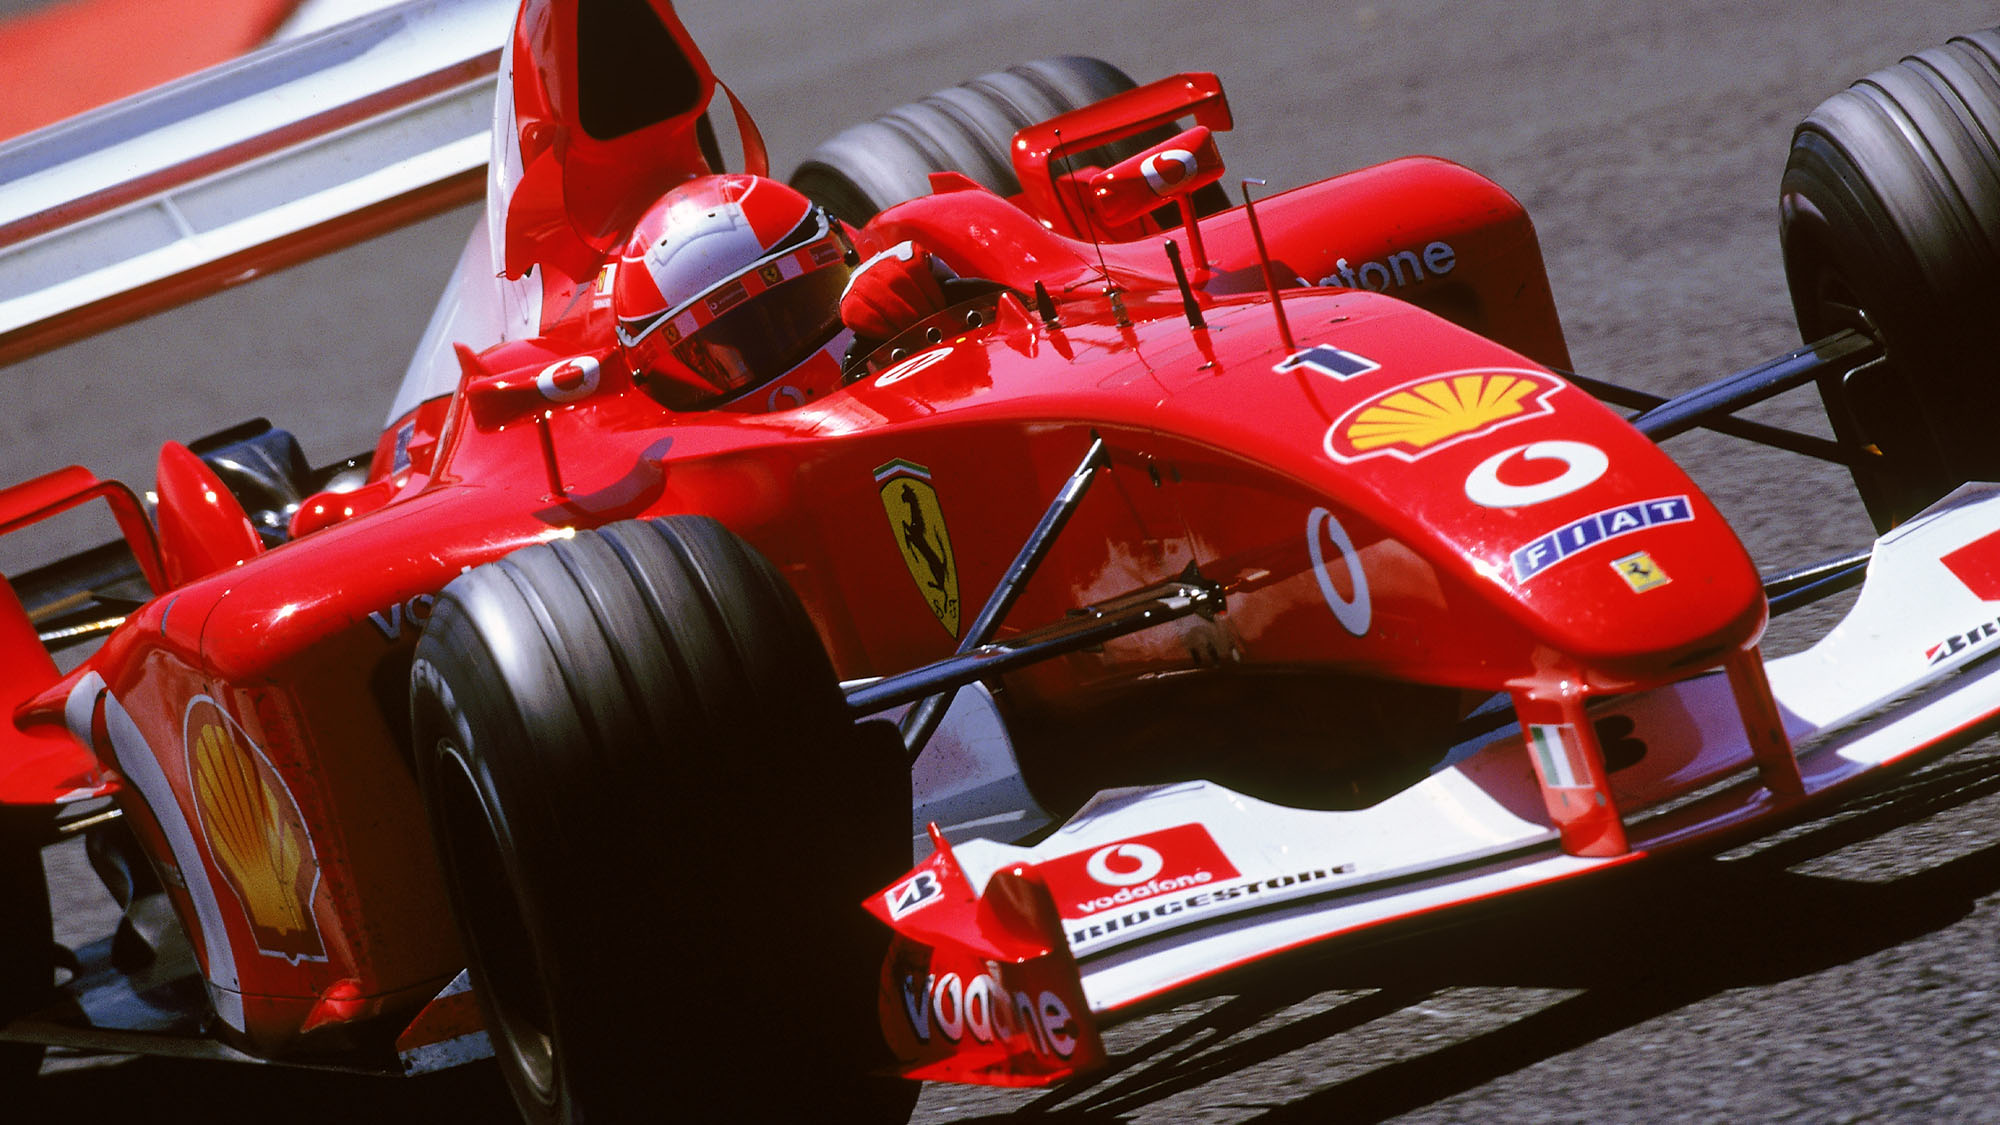 MAGNY-COURS - 21 JULY: Ferrari driver Michael Schumacher in action in the Formula One French Grand Prix at Magny-Cours in Nevers, France on July 21, 2002. (photo by Mark Thompson/Getty Images)